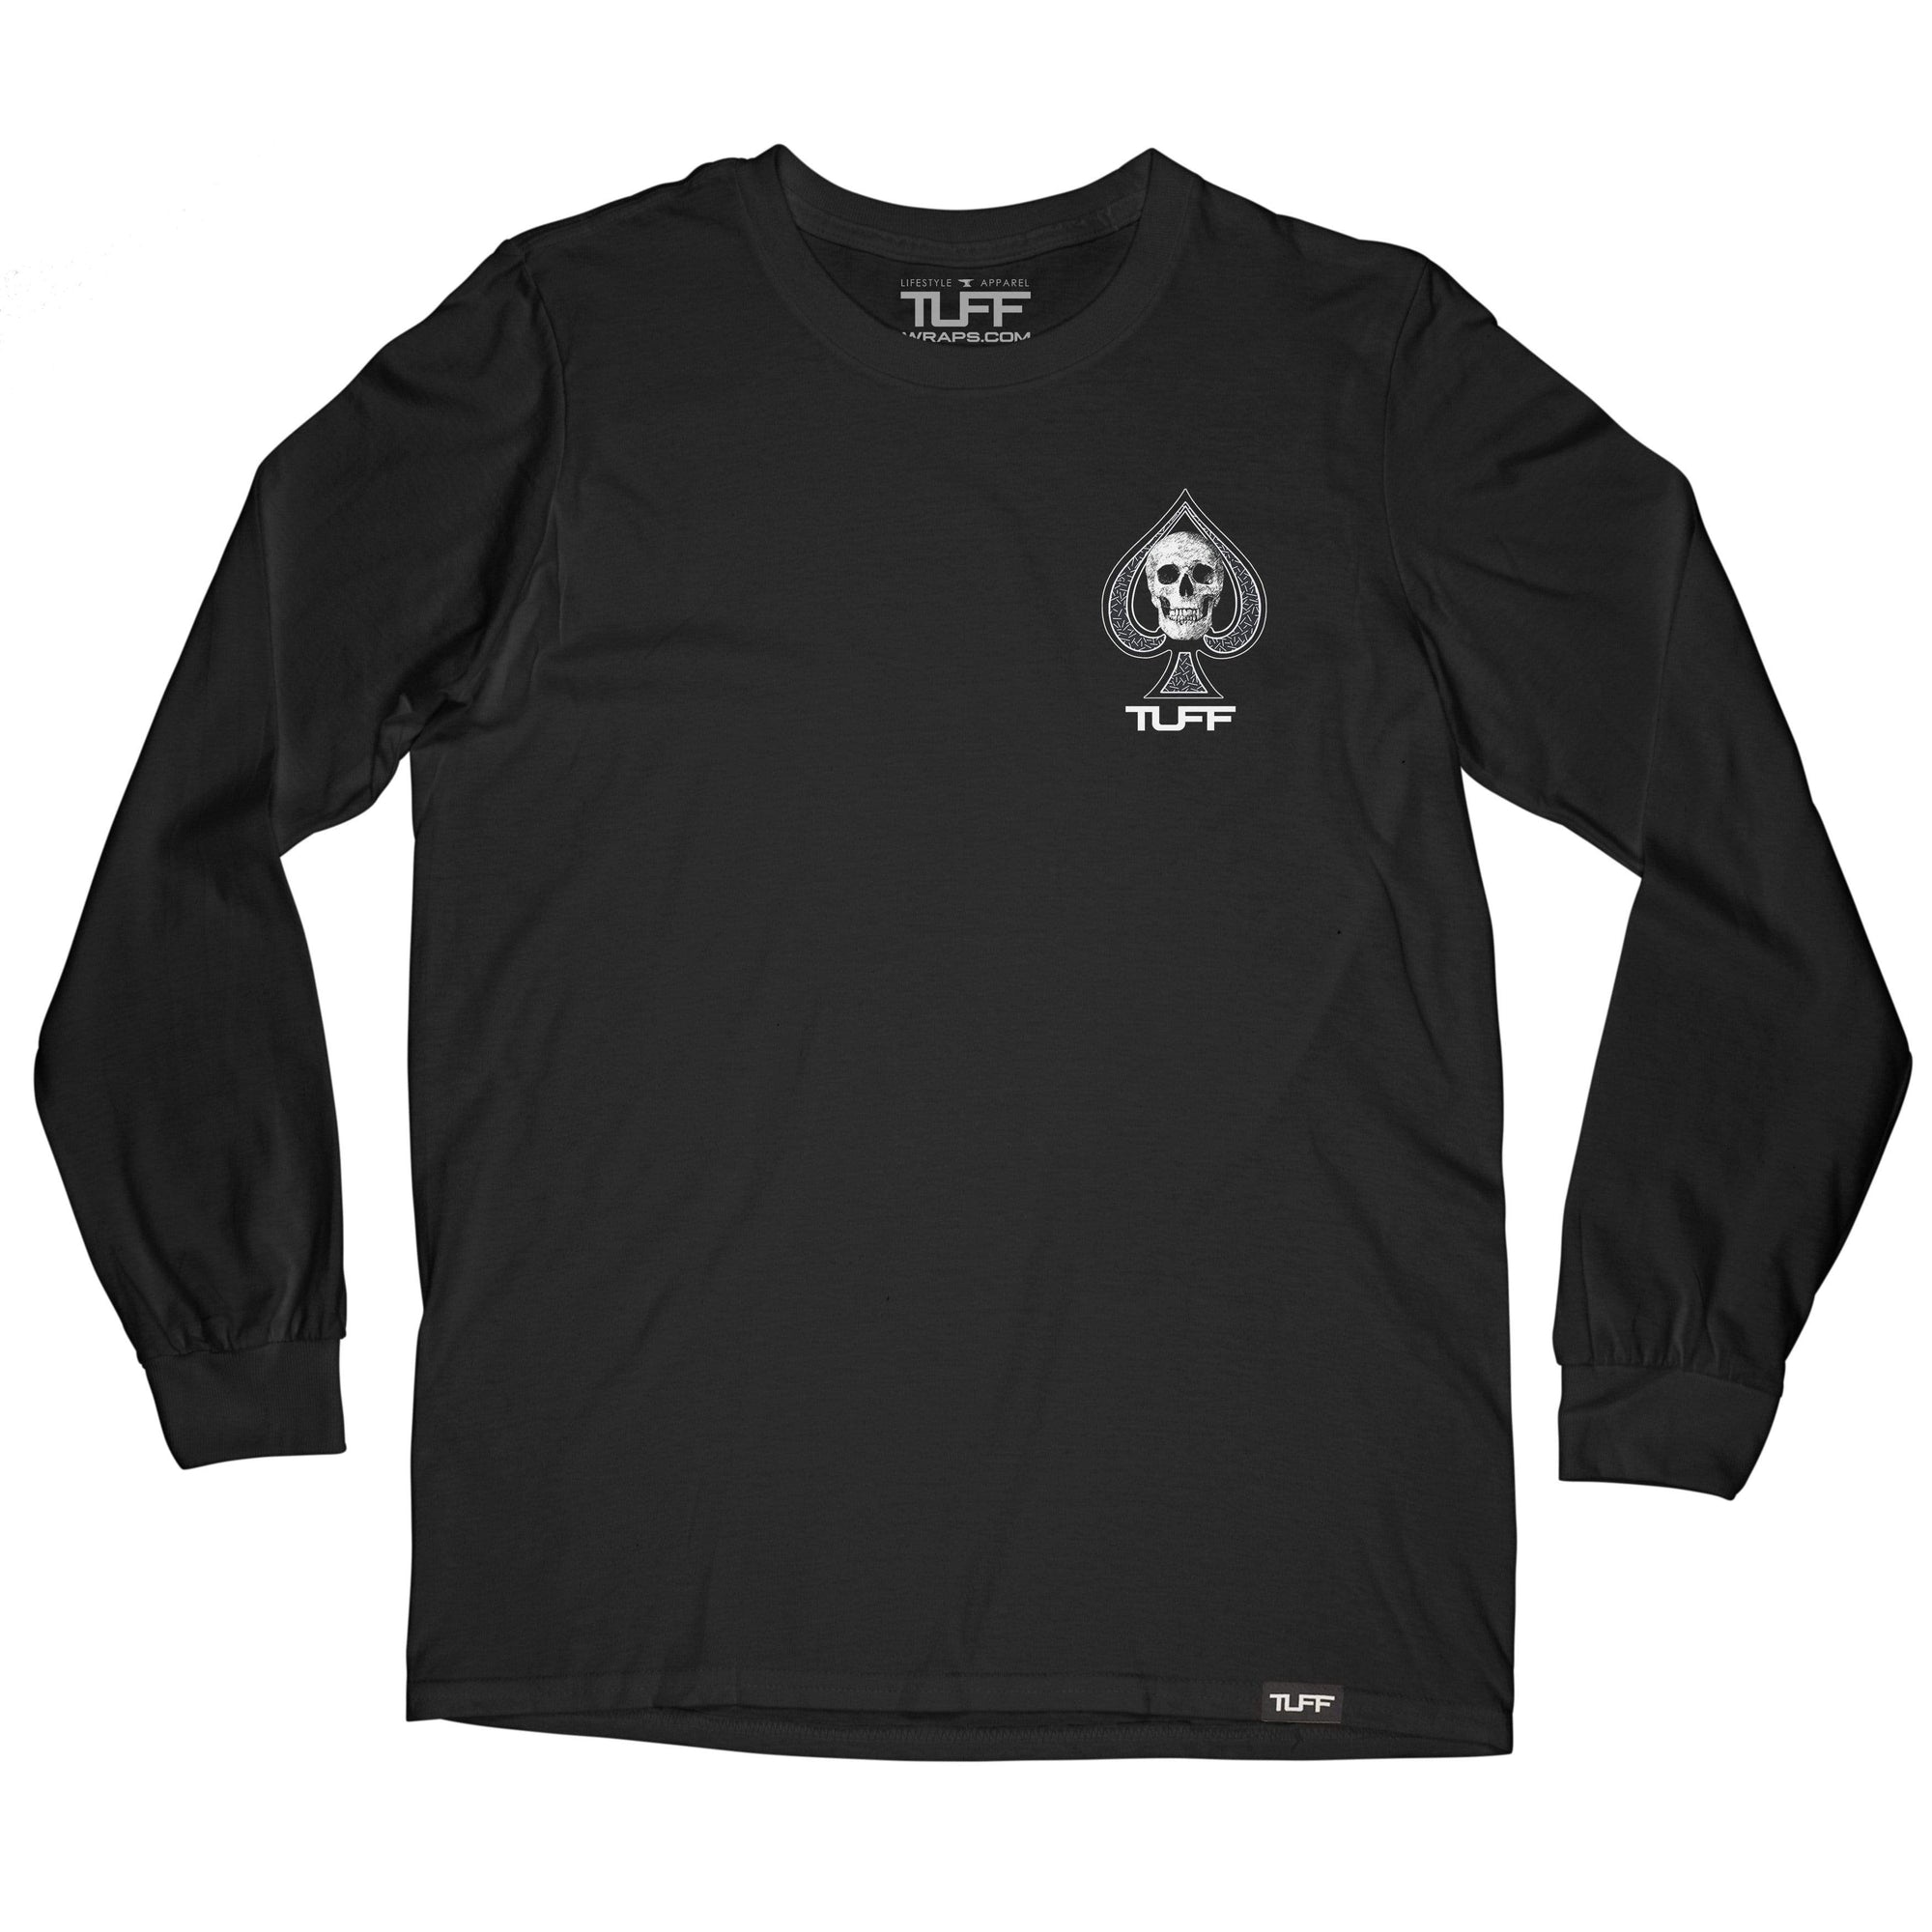 Aces of TUFF Long Sleeve Tee TuffWraps.com